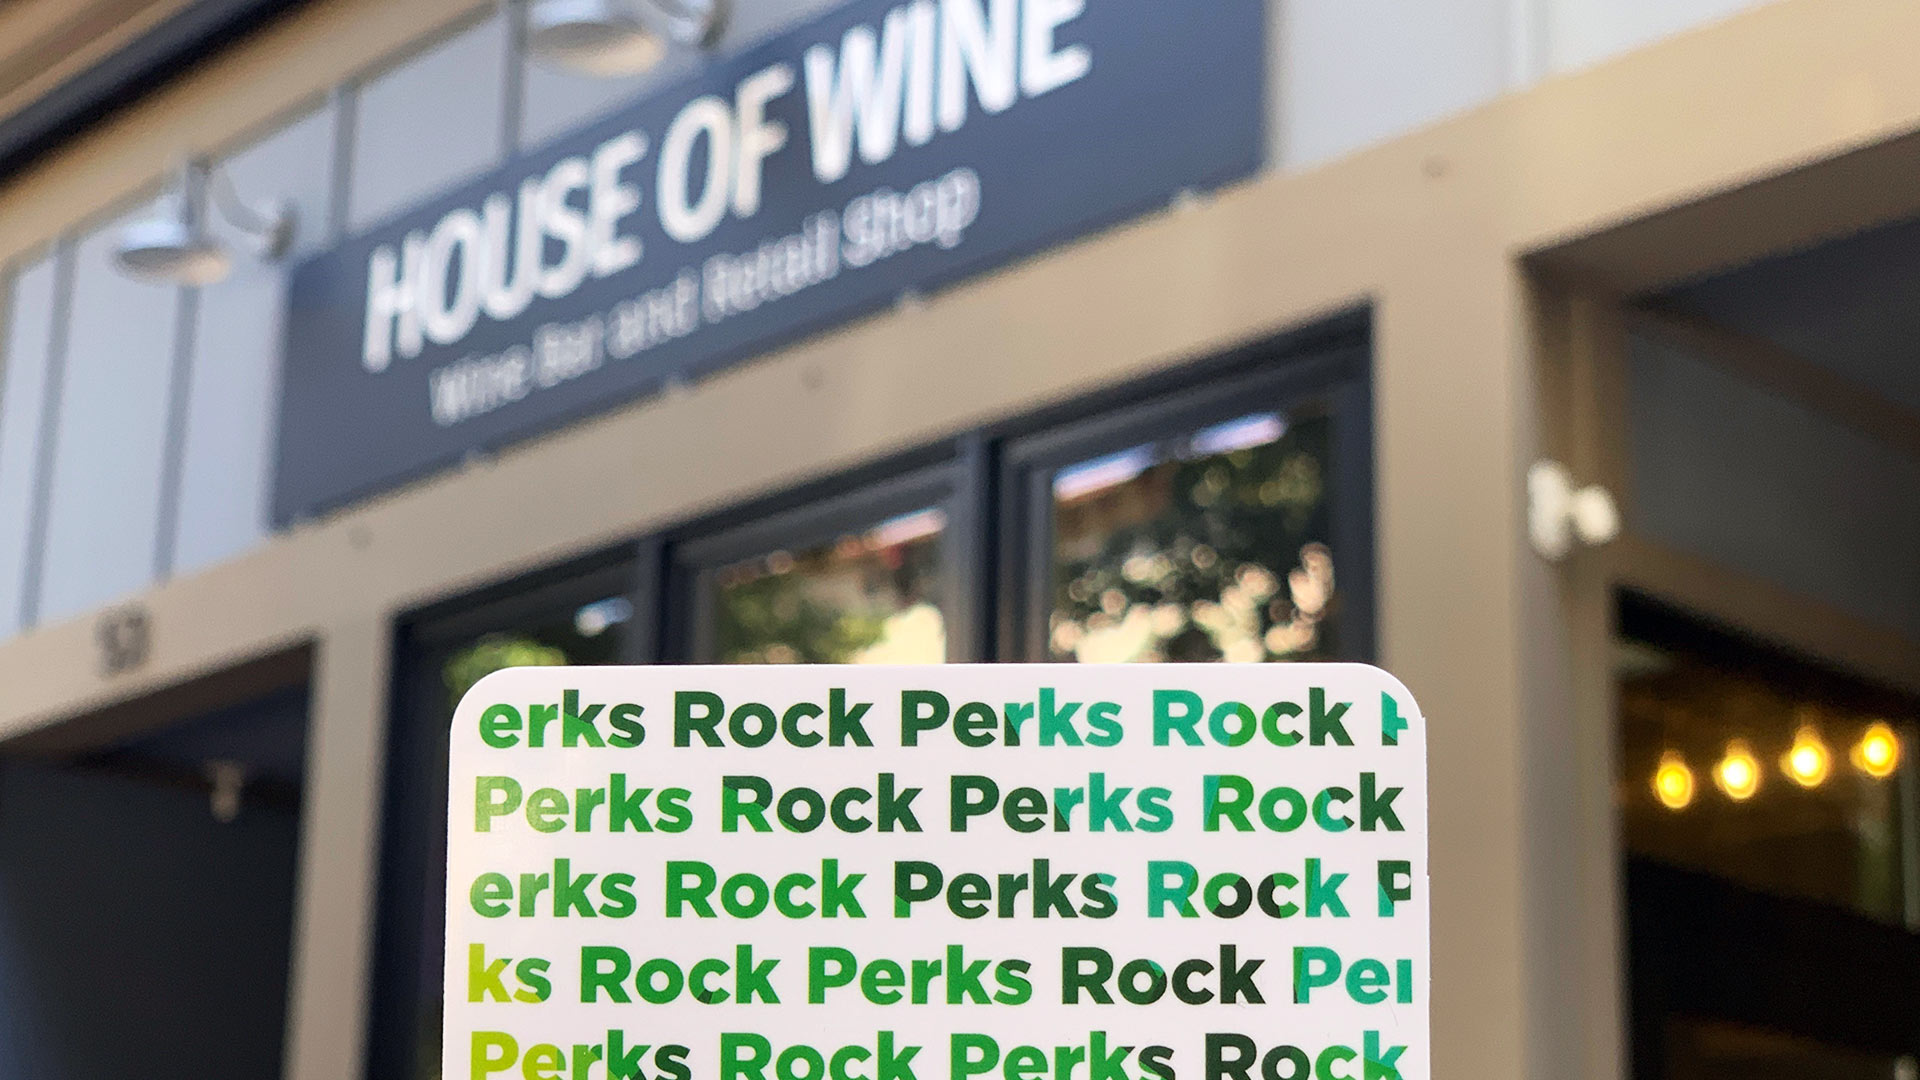 Rock Perks Card - House of Wine